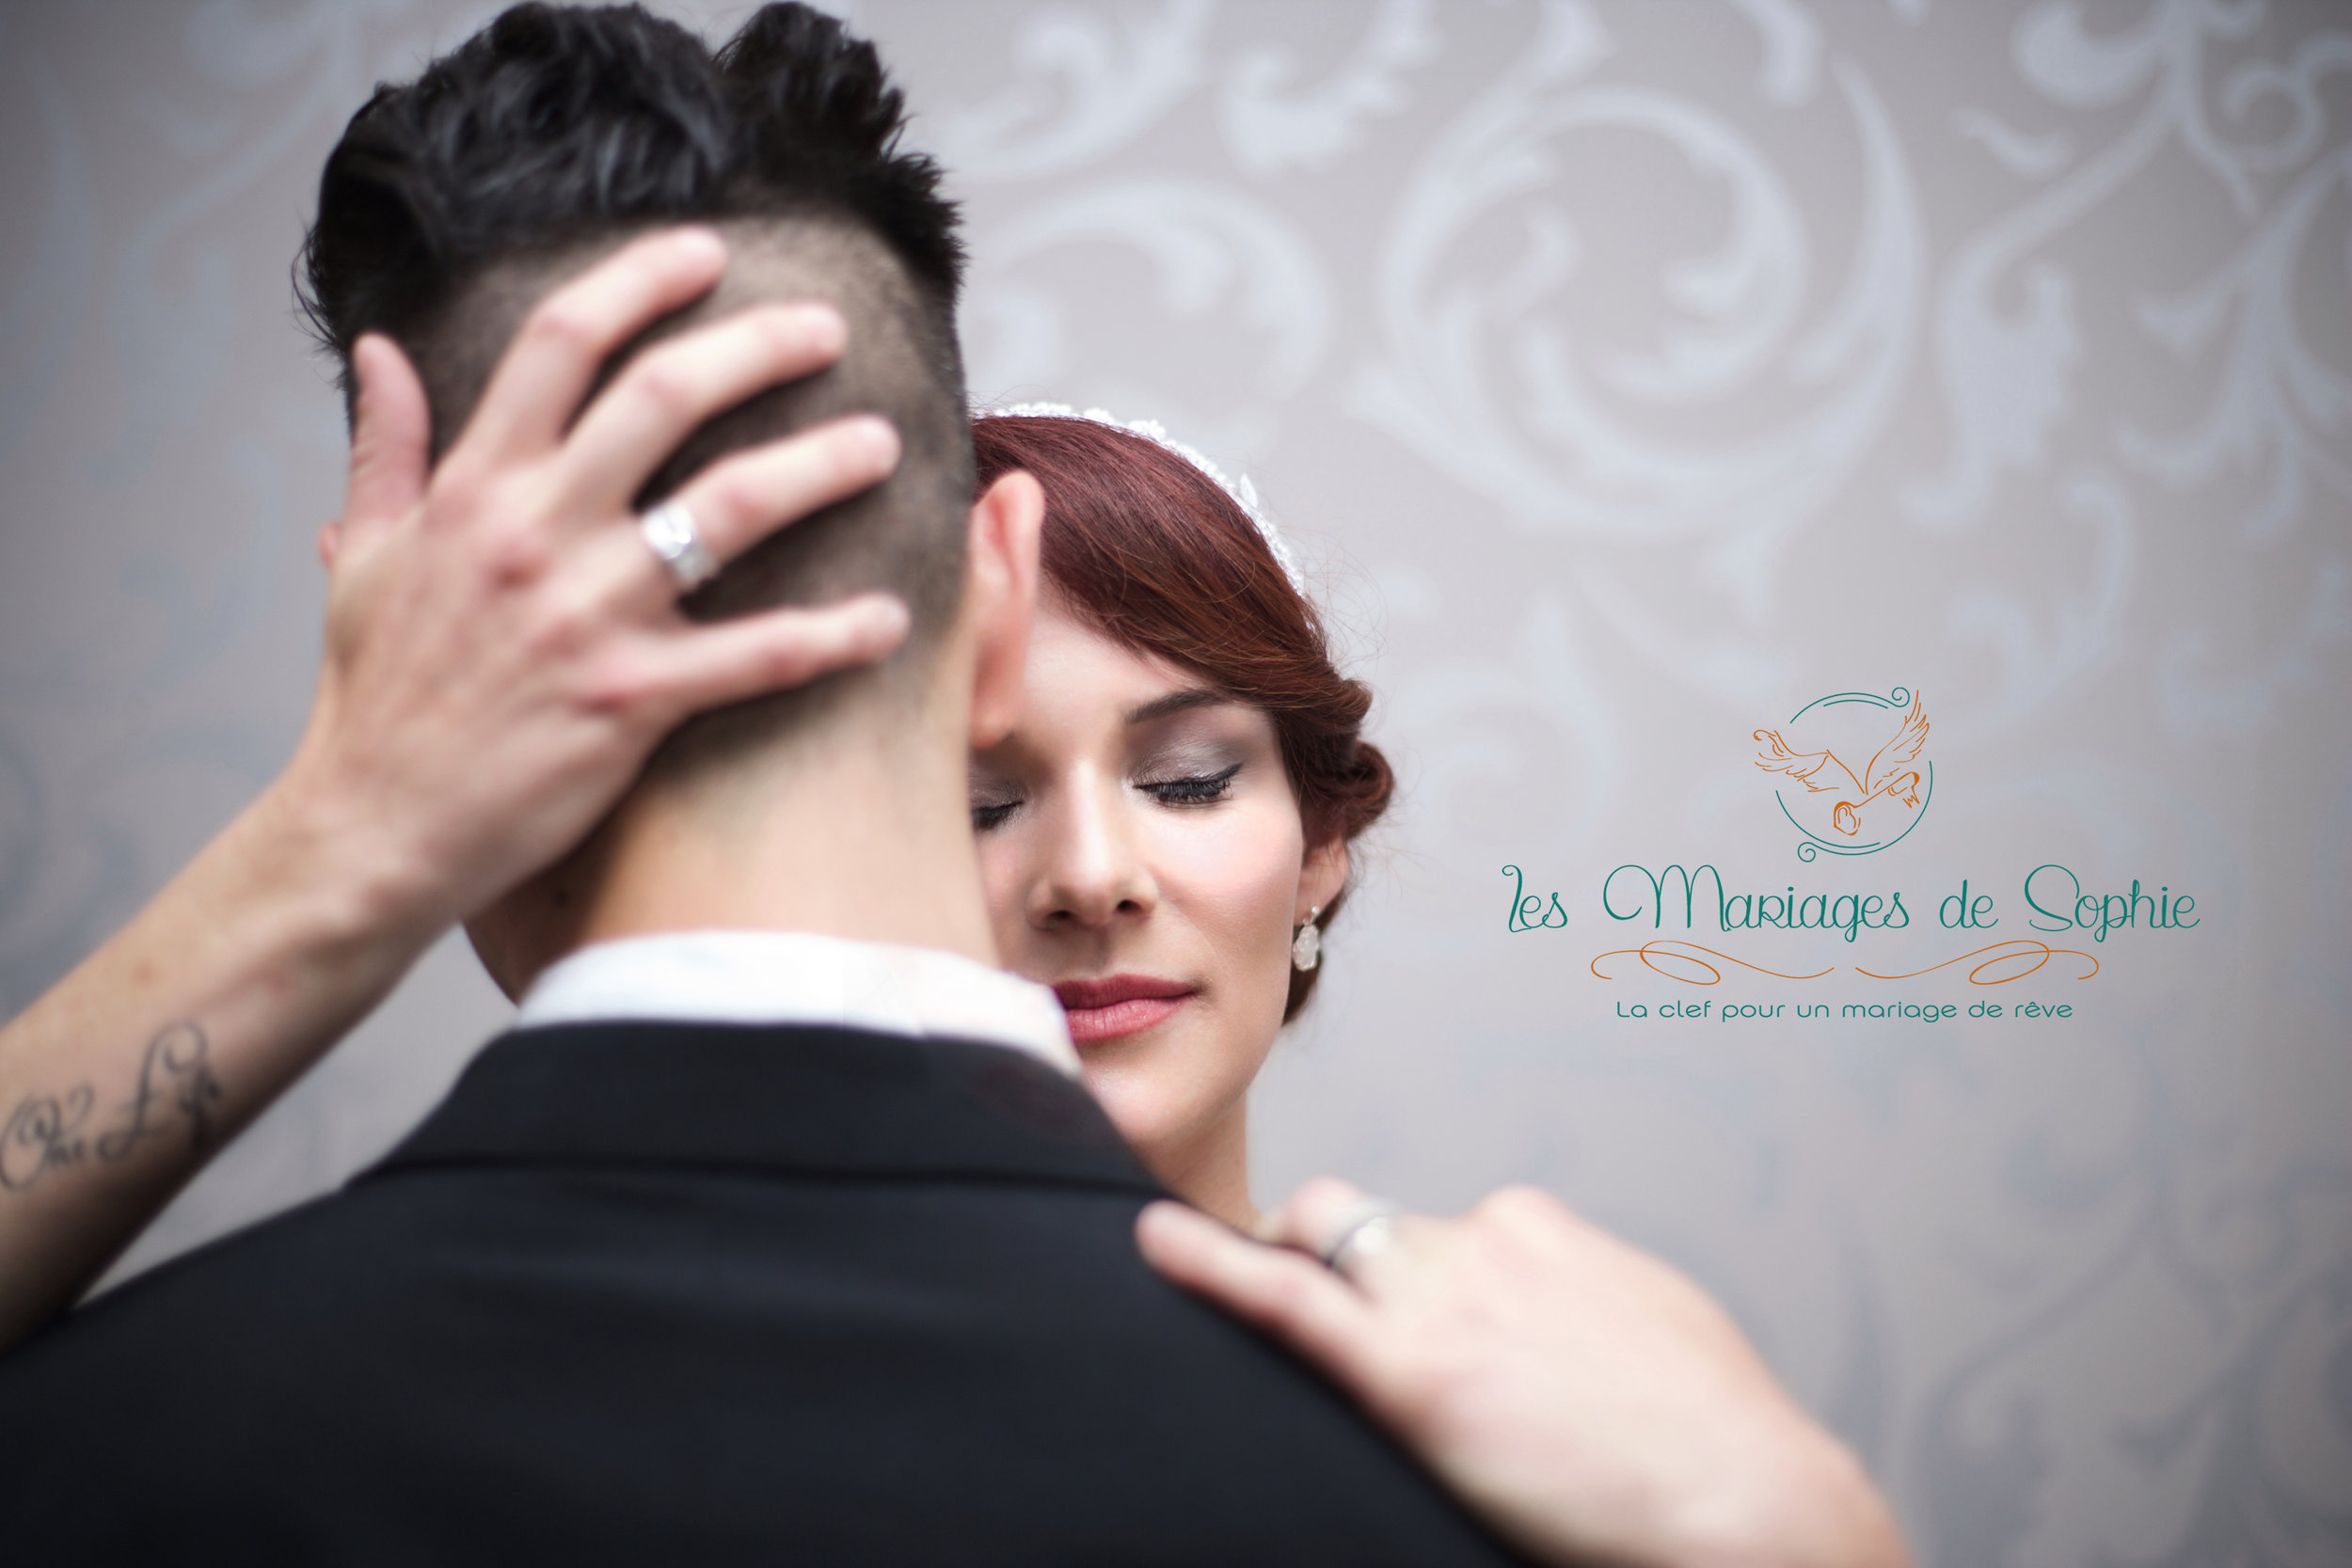 Couple embrace with sophie logo.jpg